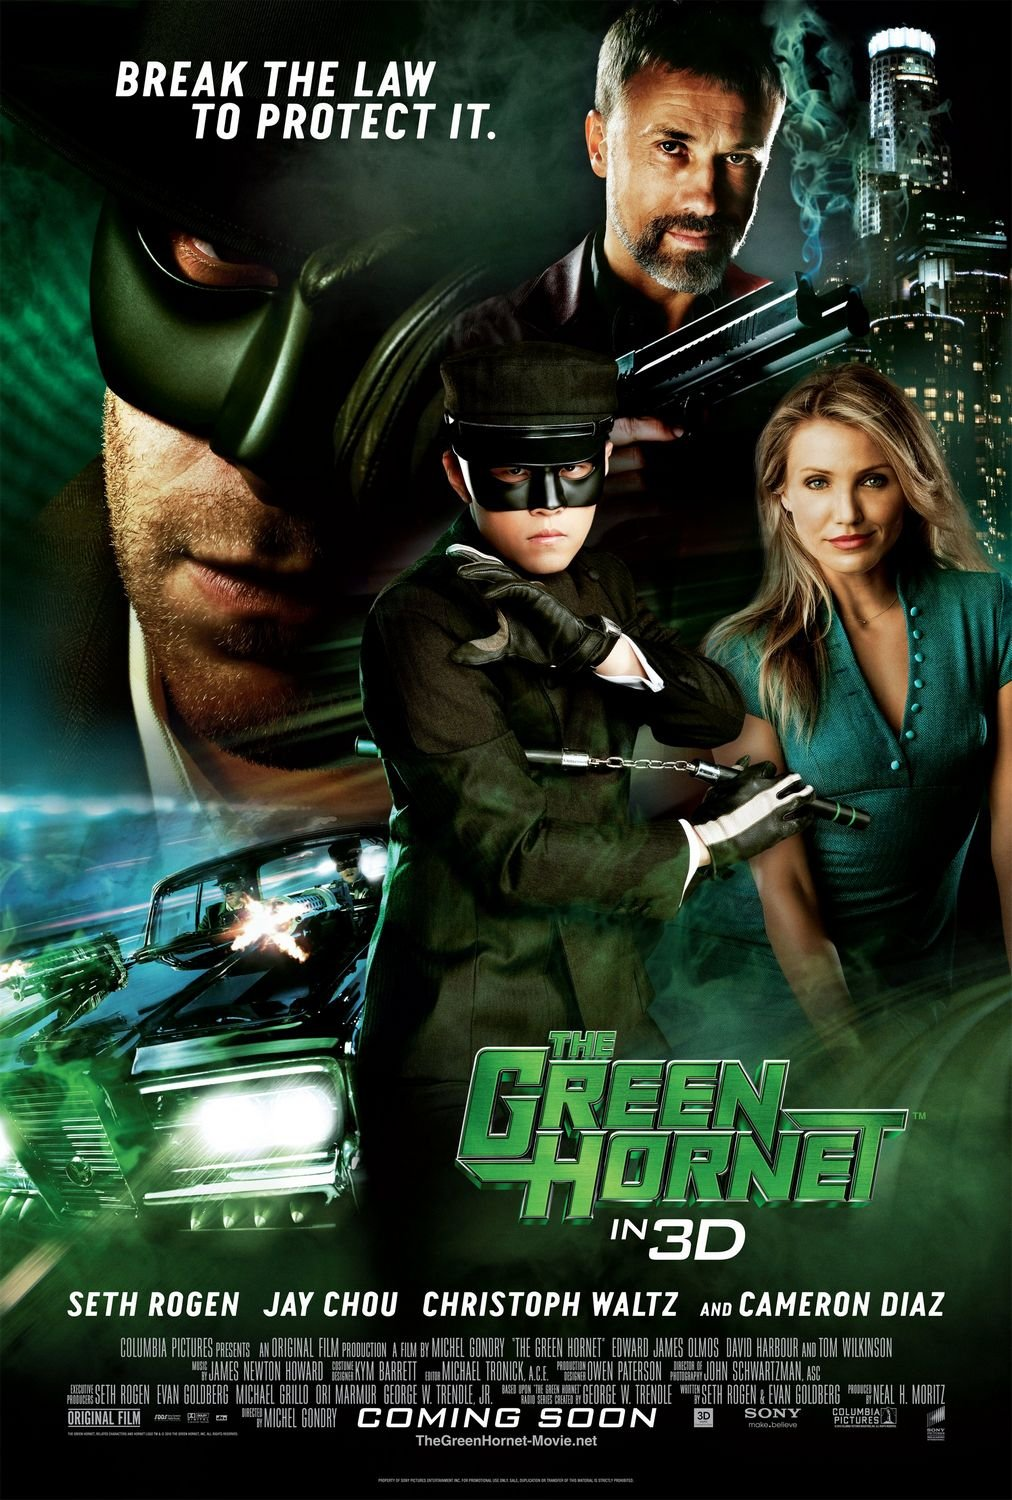 The Green Hornet 2011 Hindi Dual Audio 720p BluRay 800MB Download